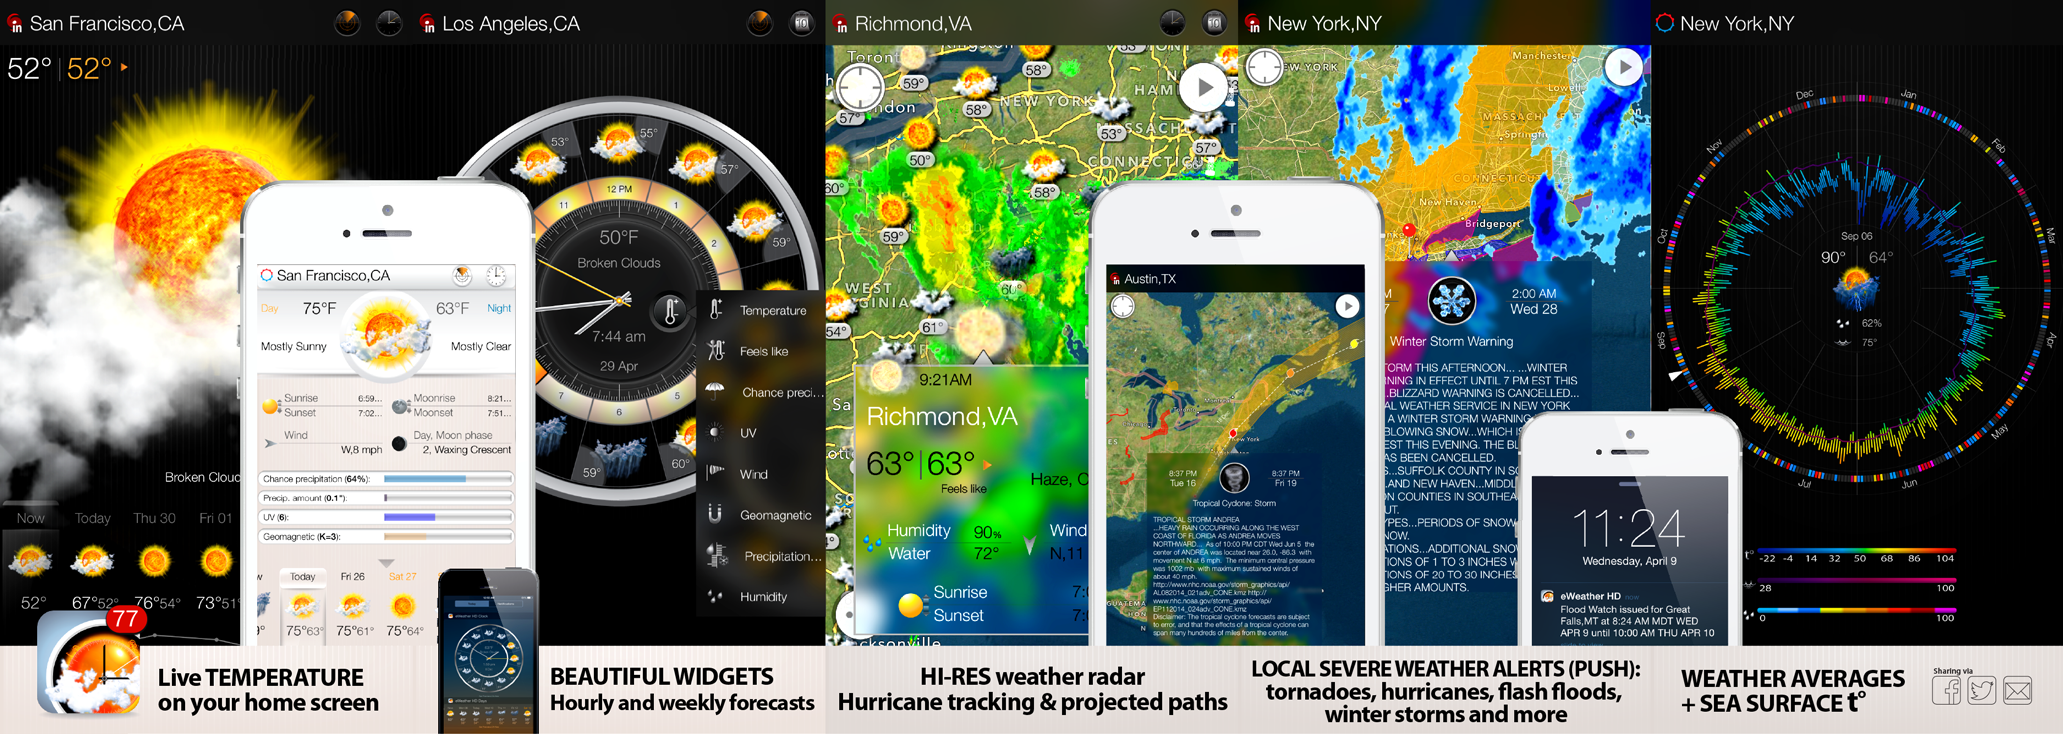 eweather-hd-weather-app-iphone-ipad-aler